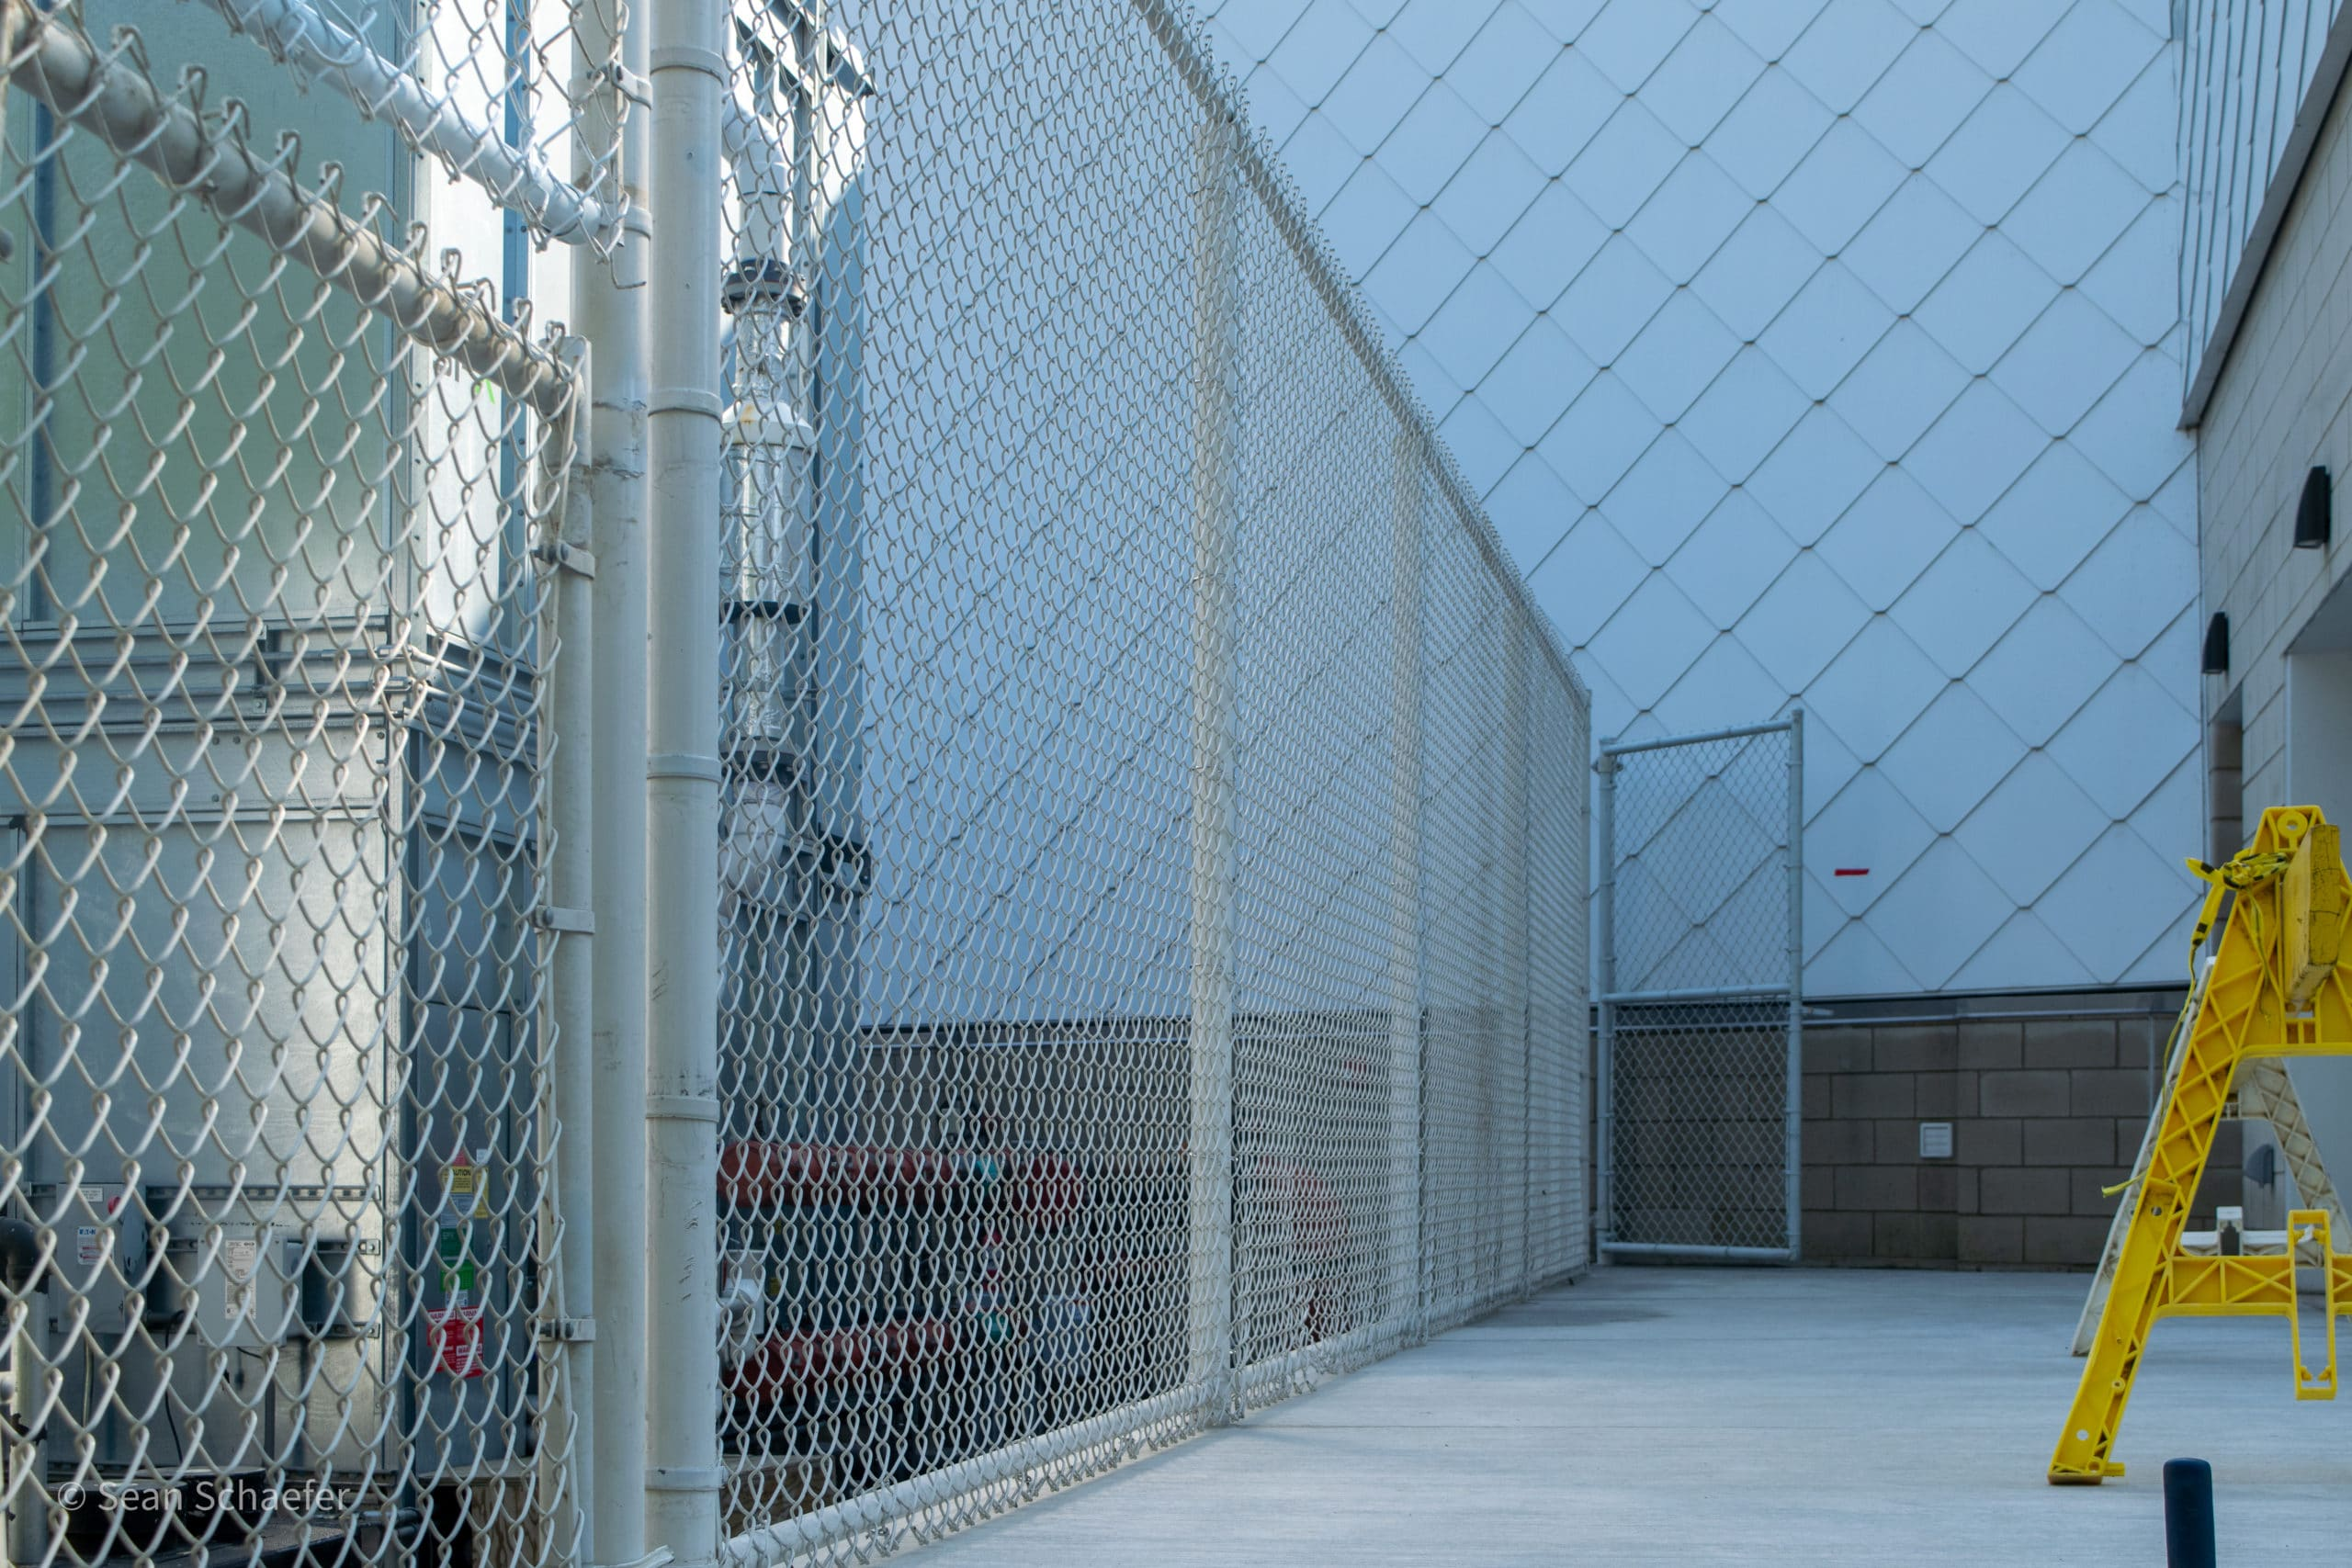 Image of commercial chain link fencing and gates at the Detroit Zoological Society